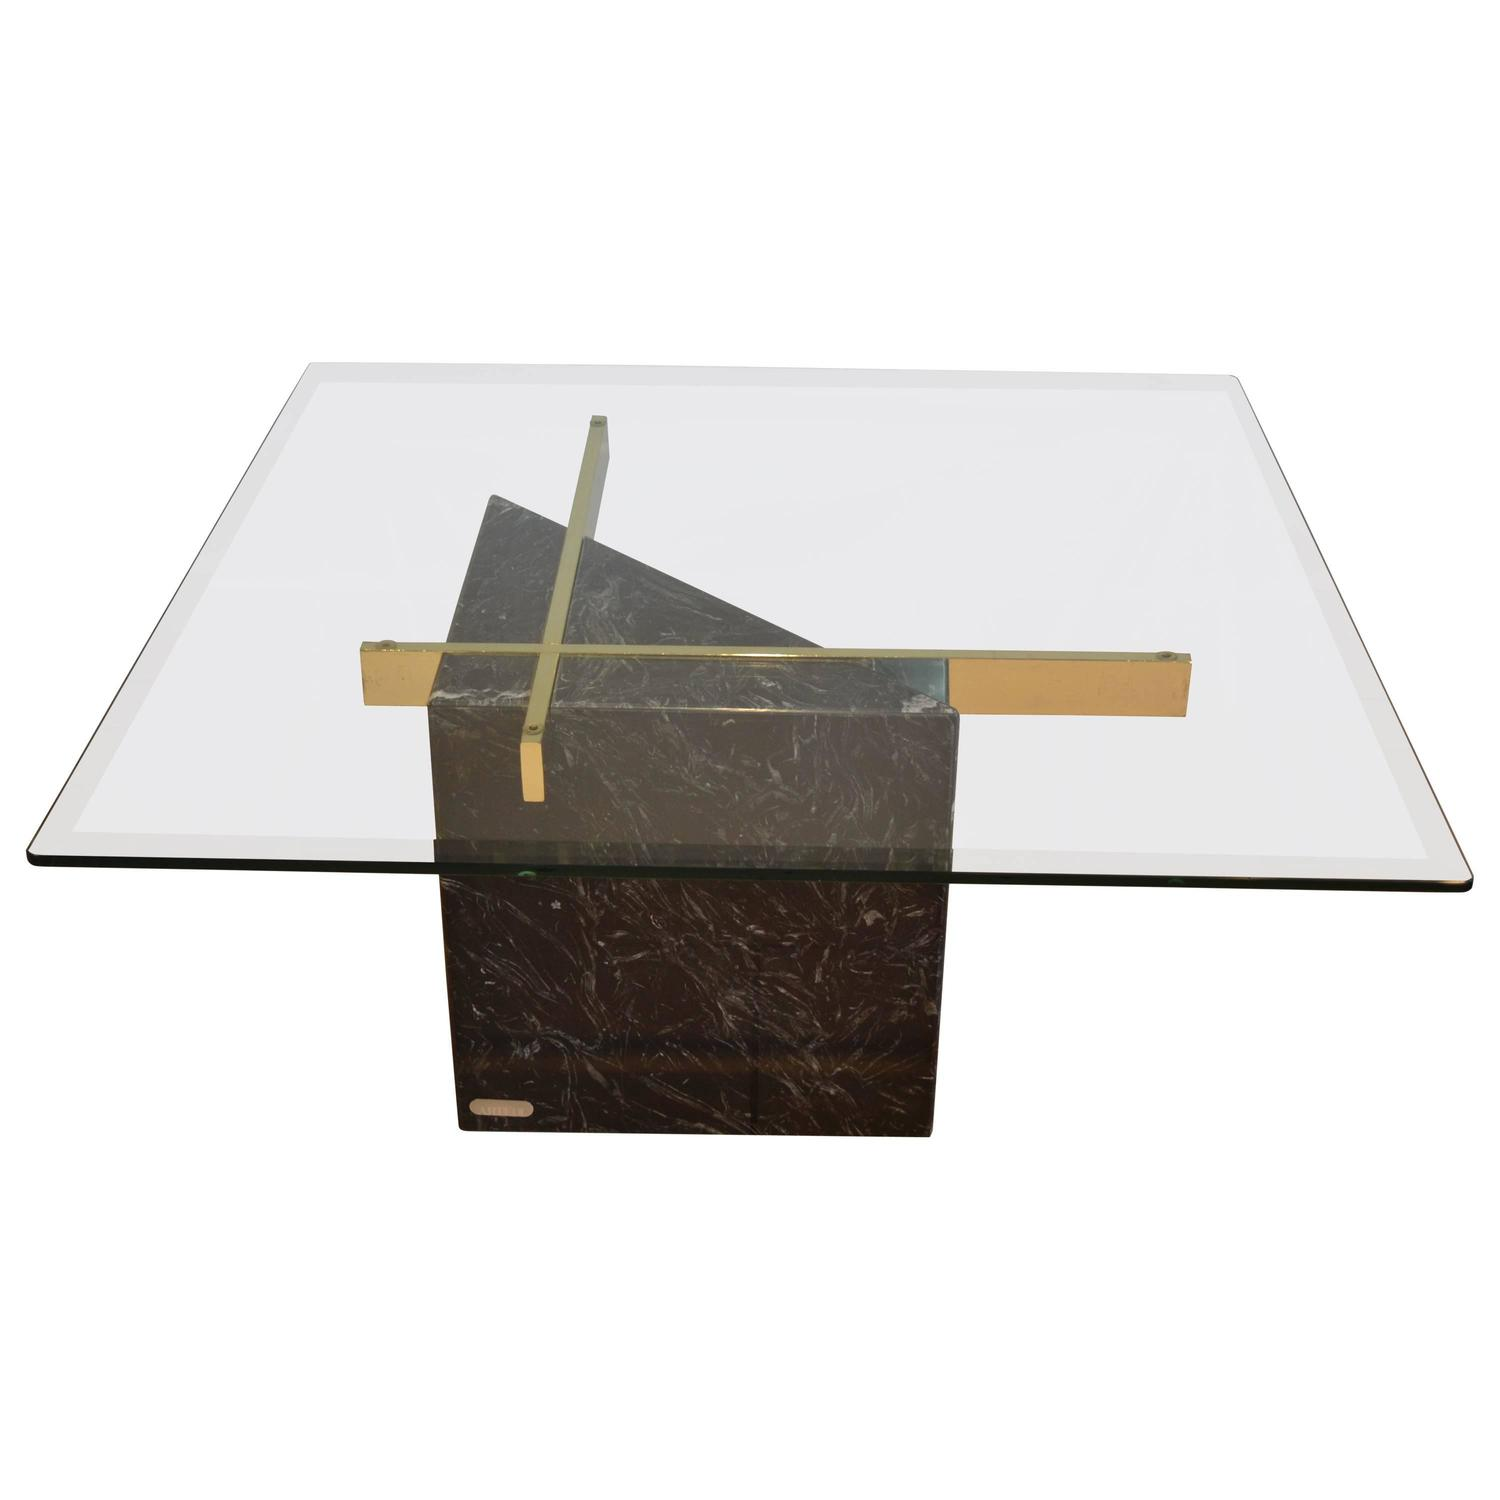 Black marquina marble base and glass top coffee table by artedi italy for sale at 1stdibs Glass coffee table base